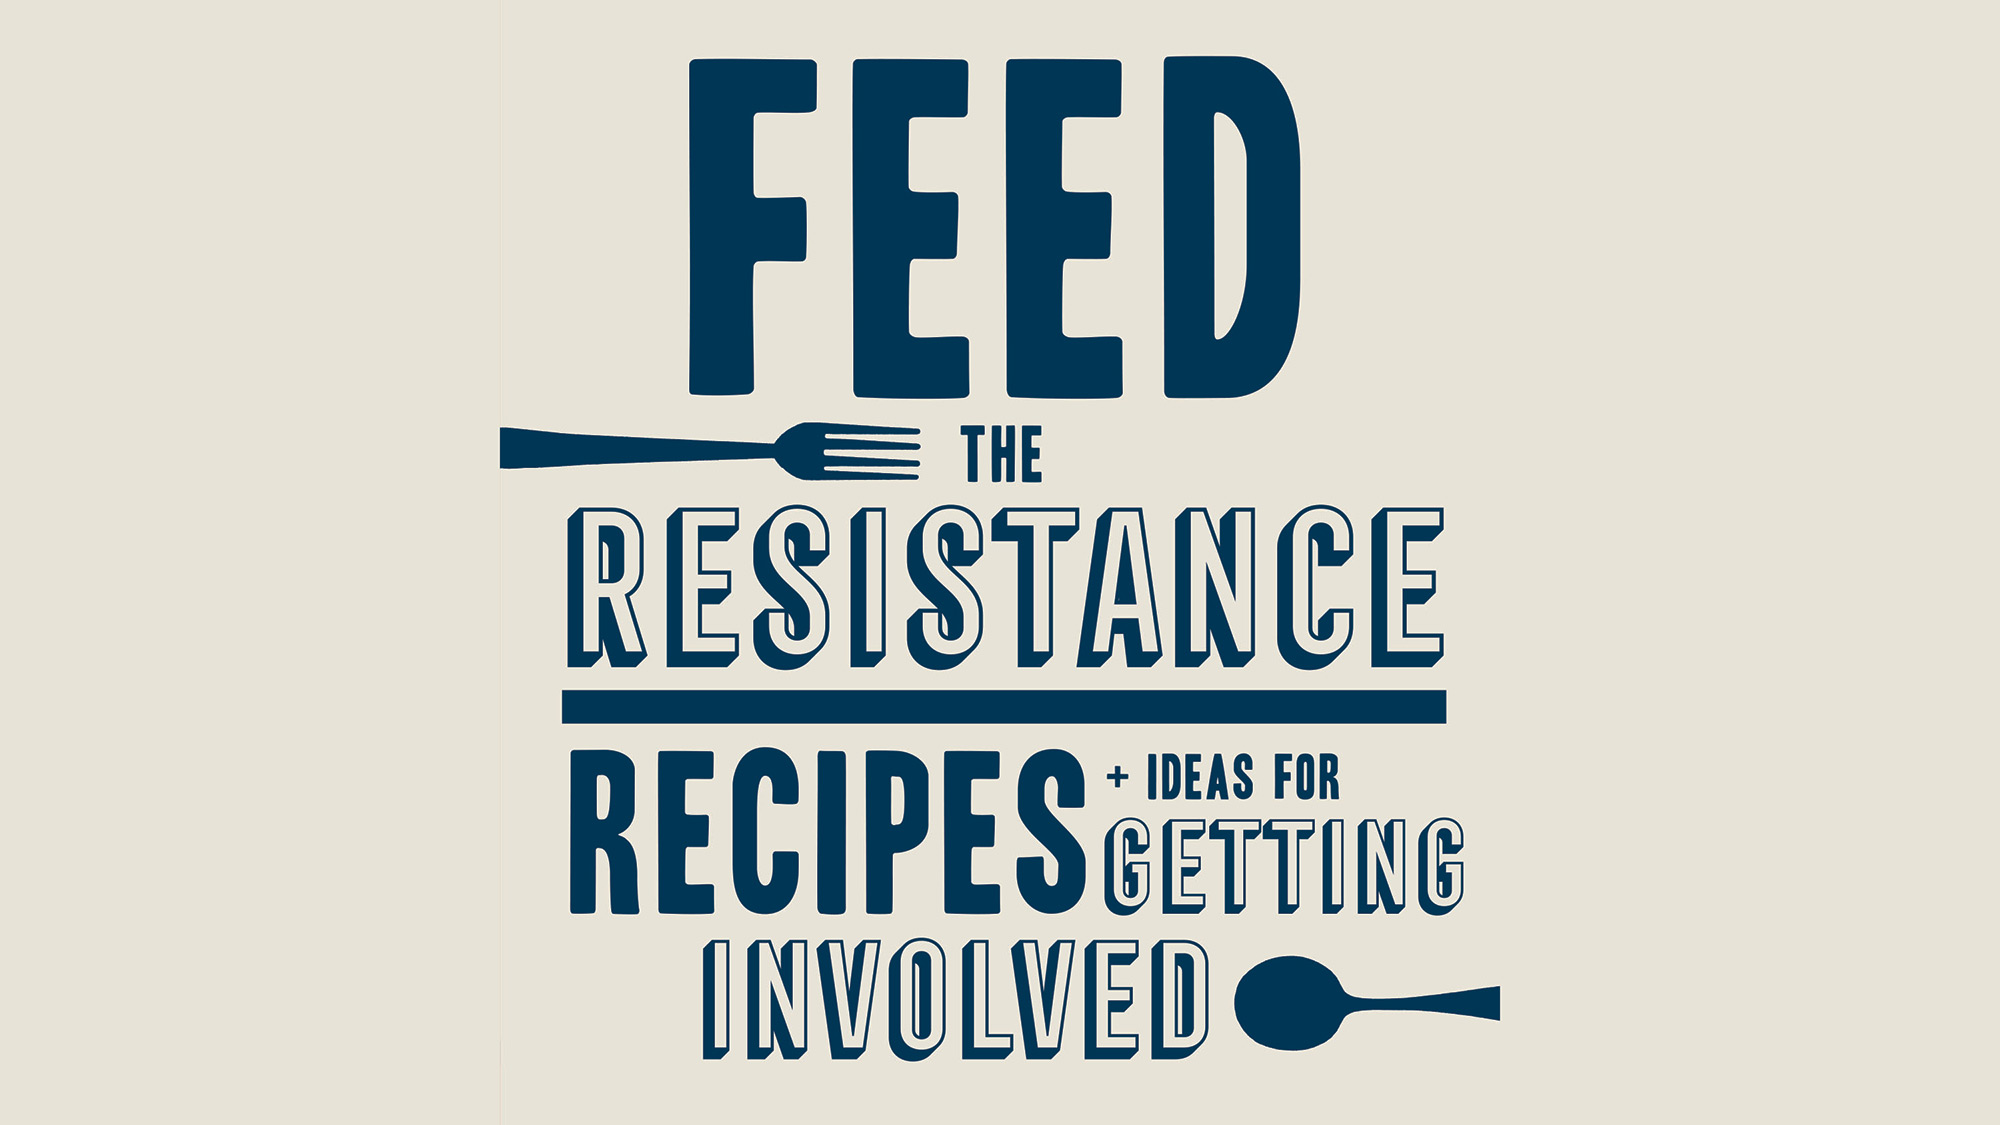 Feed the Resistance cover